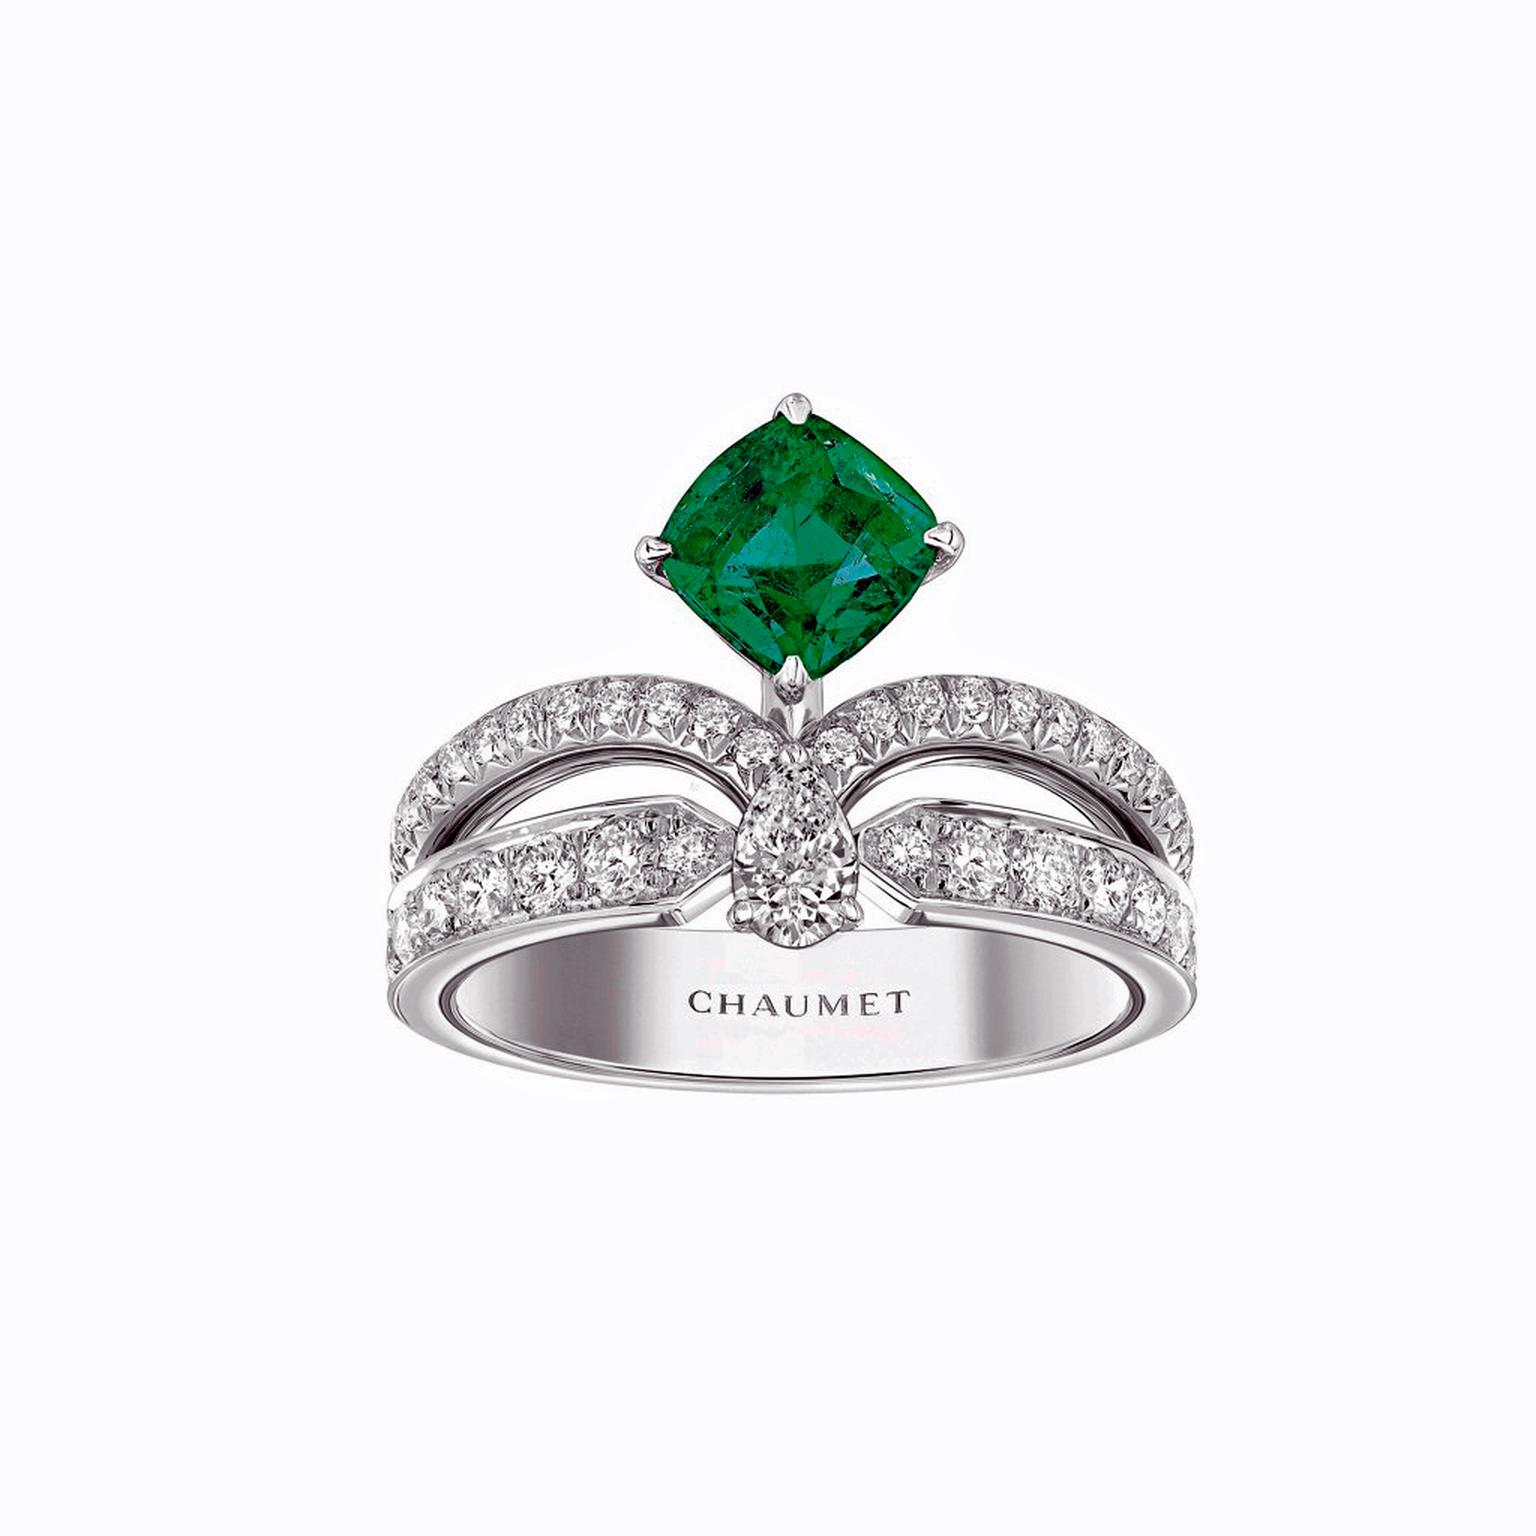 Chaumet Joséphine emerald ring